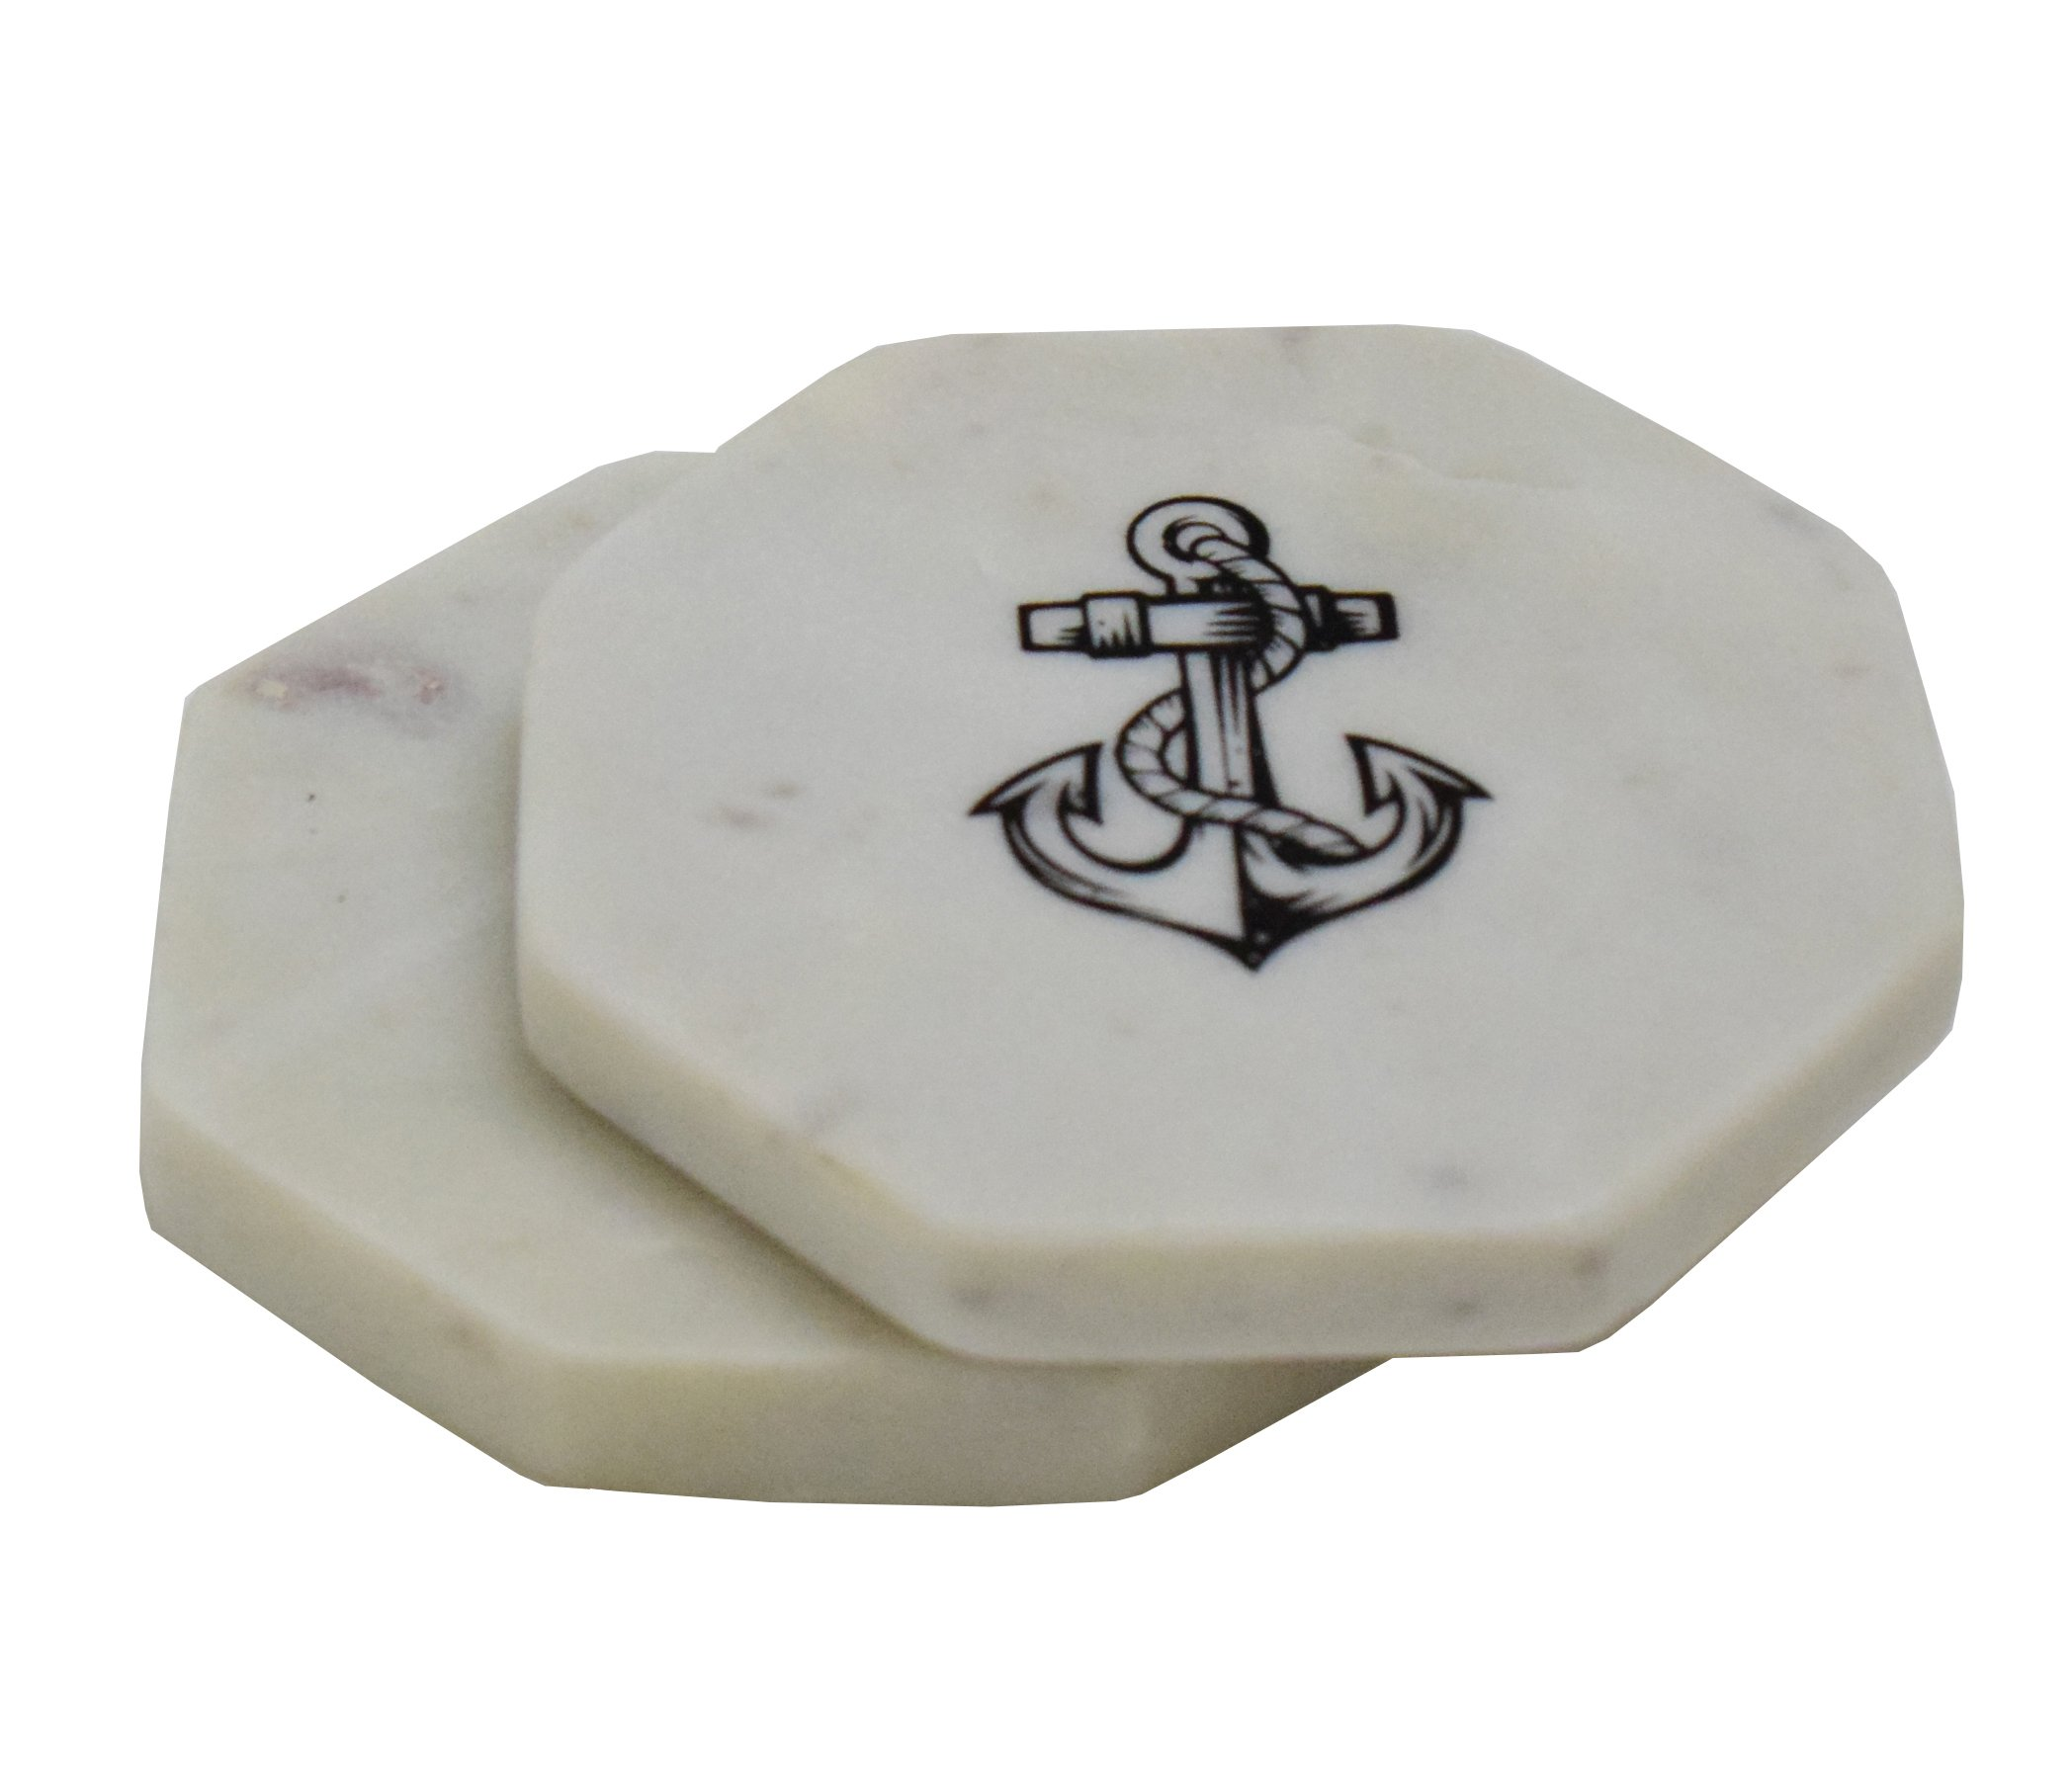 Hashcart Designer Octagonal Shape Anchor Print Marble Coasters for Drinks-Hot & Cold/Carved Marble Coaster Sets, Dining, Tea & Coffee Table Decorative Cocktail Coasters (Set of 6)